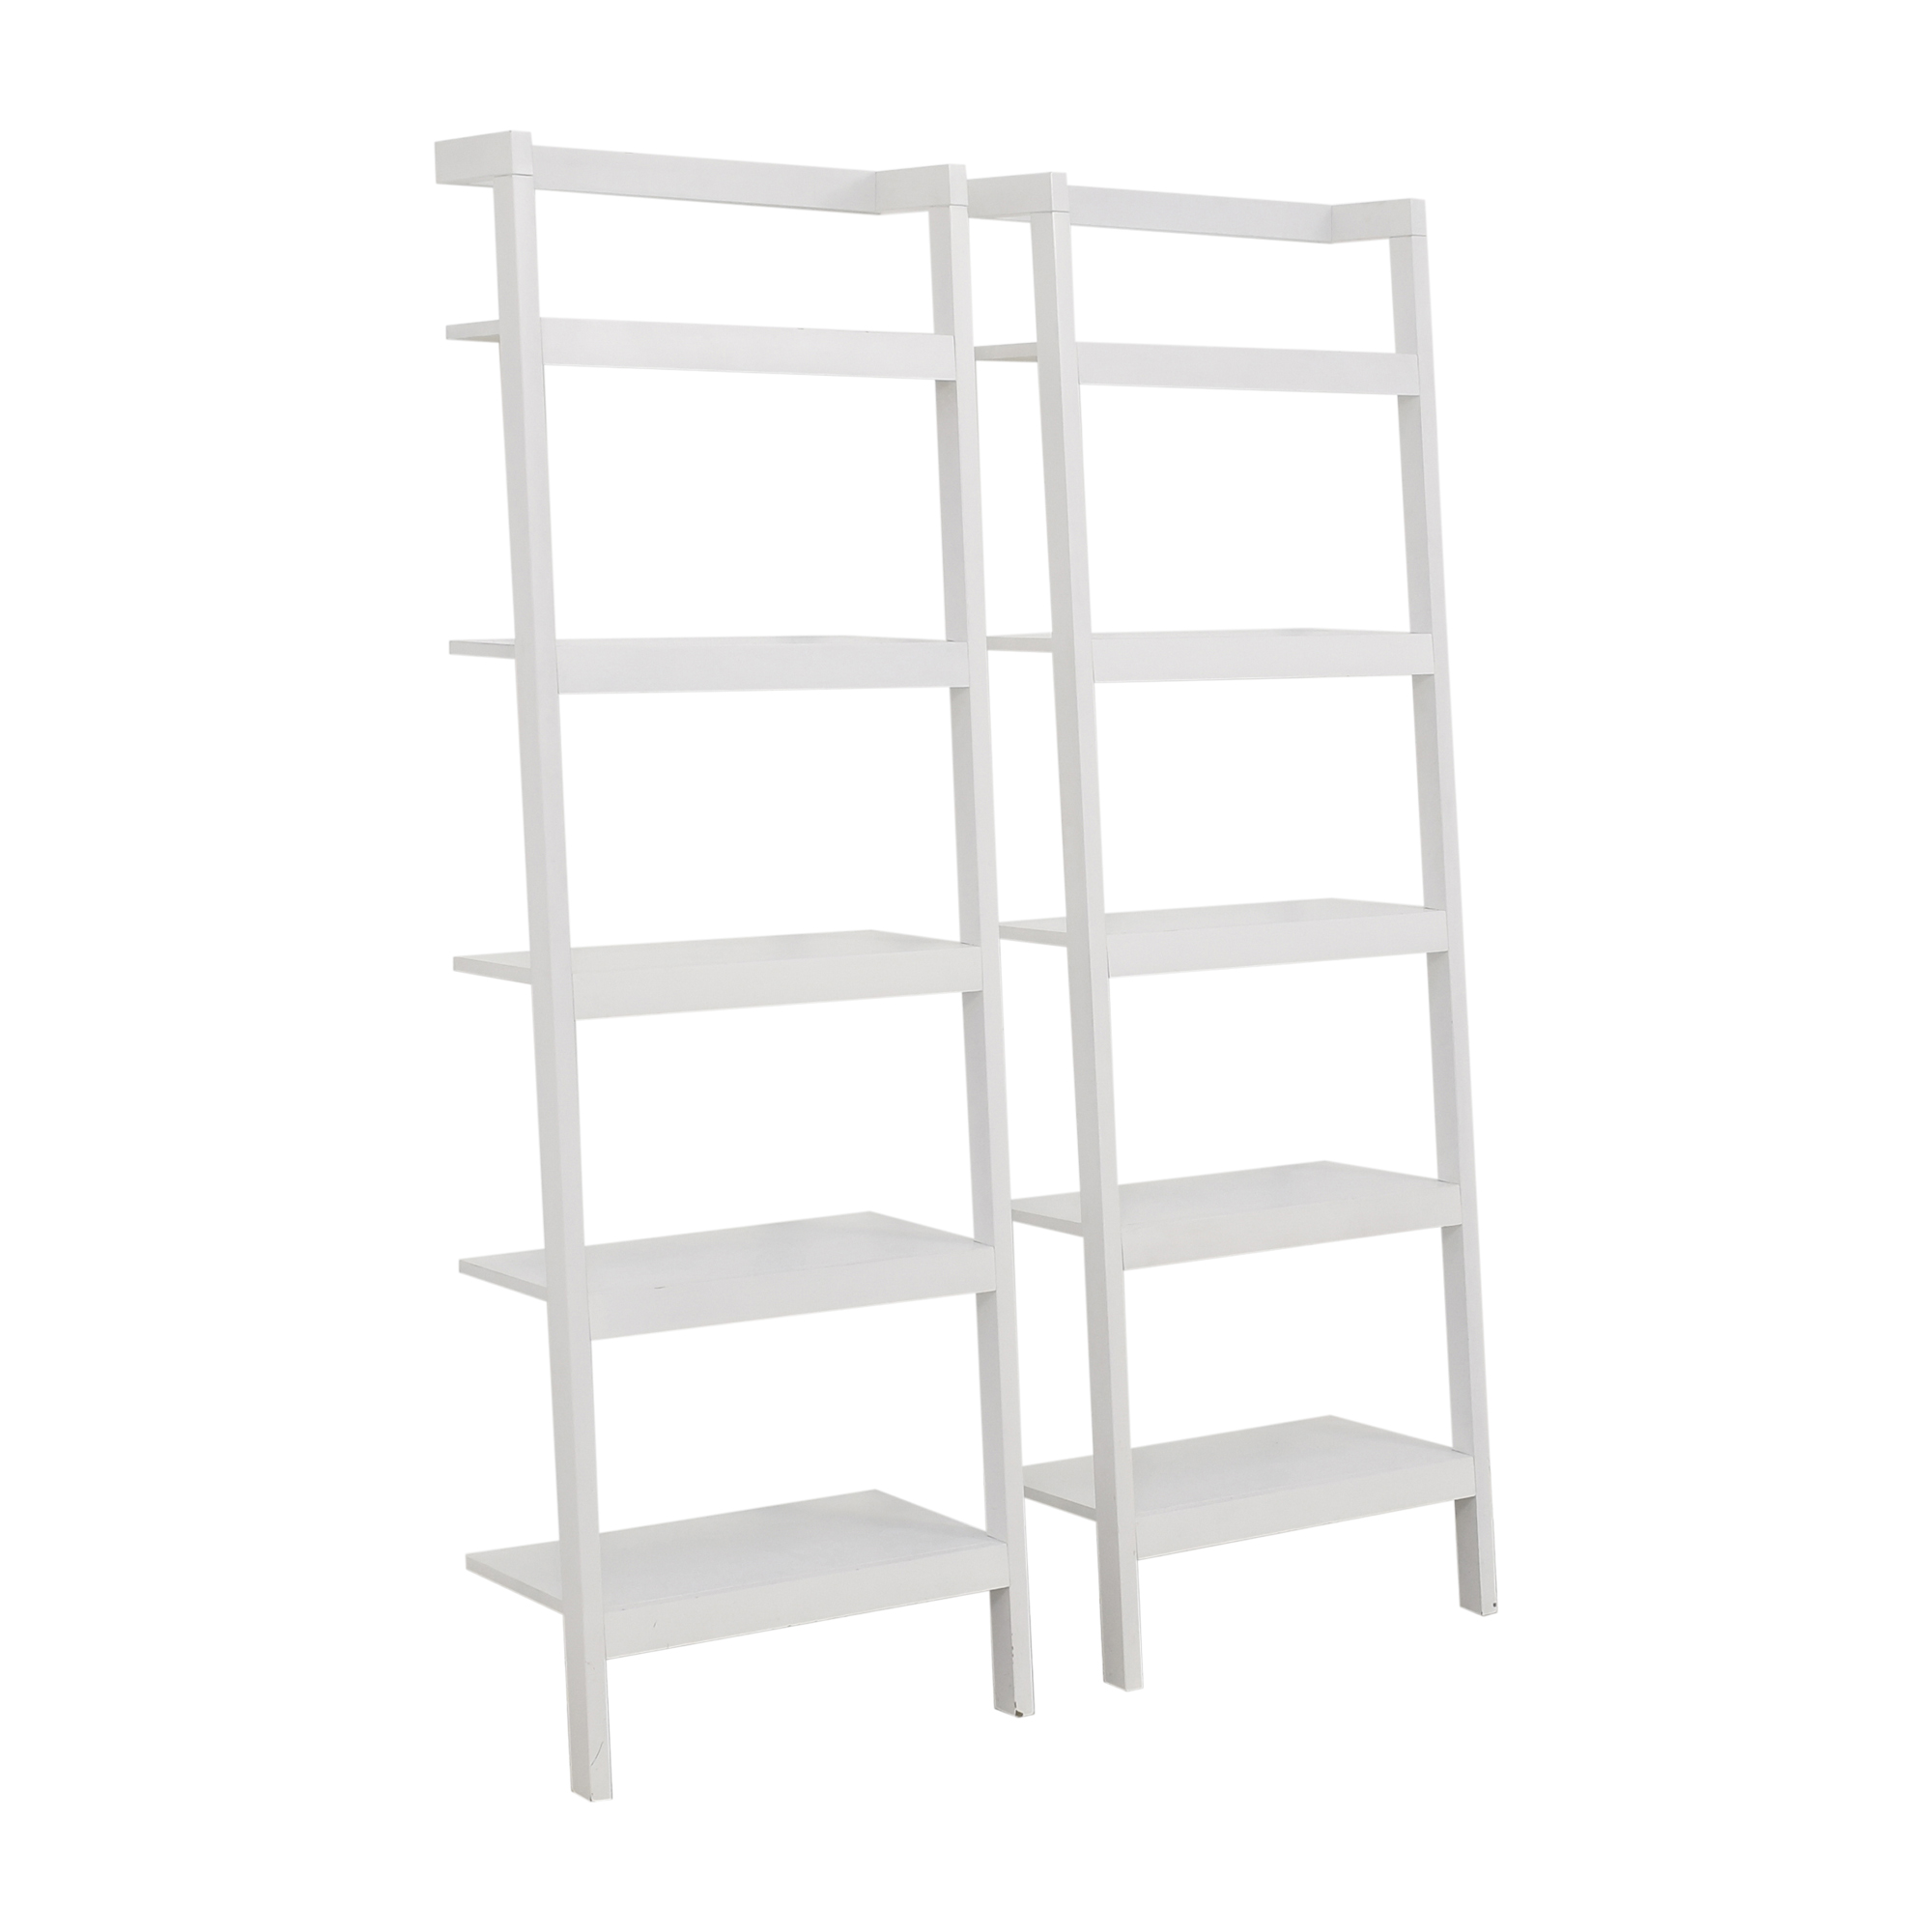 Crate & Barrel Crate & Barrel Leaning Shelves used